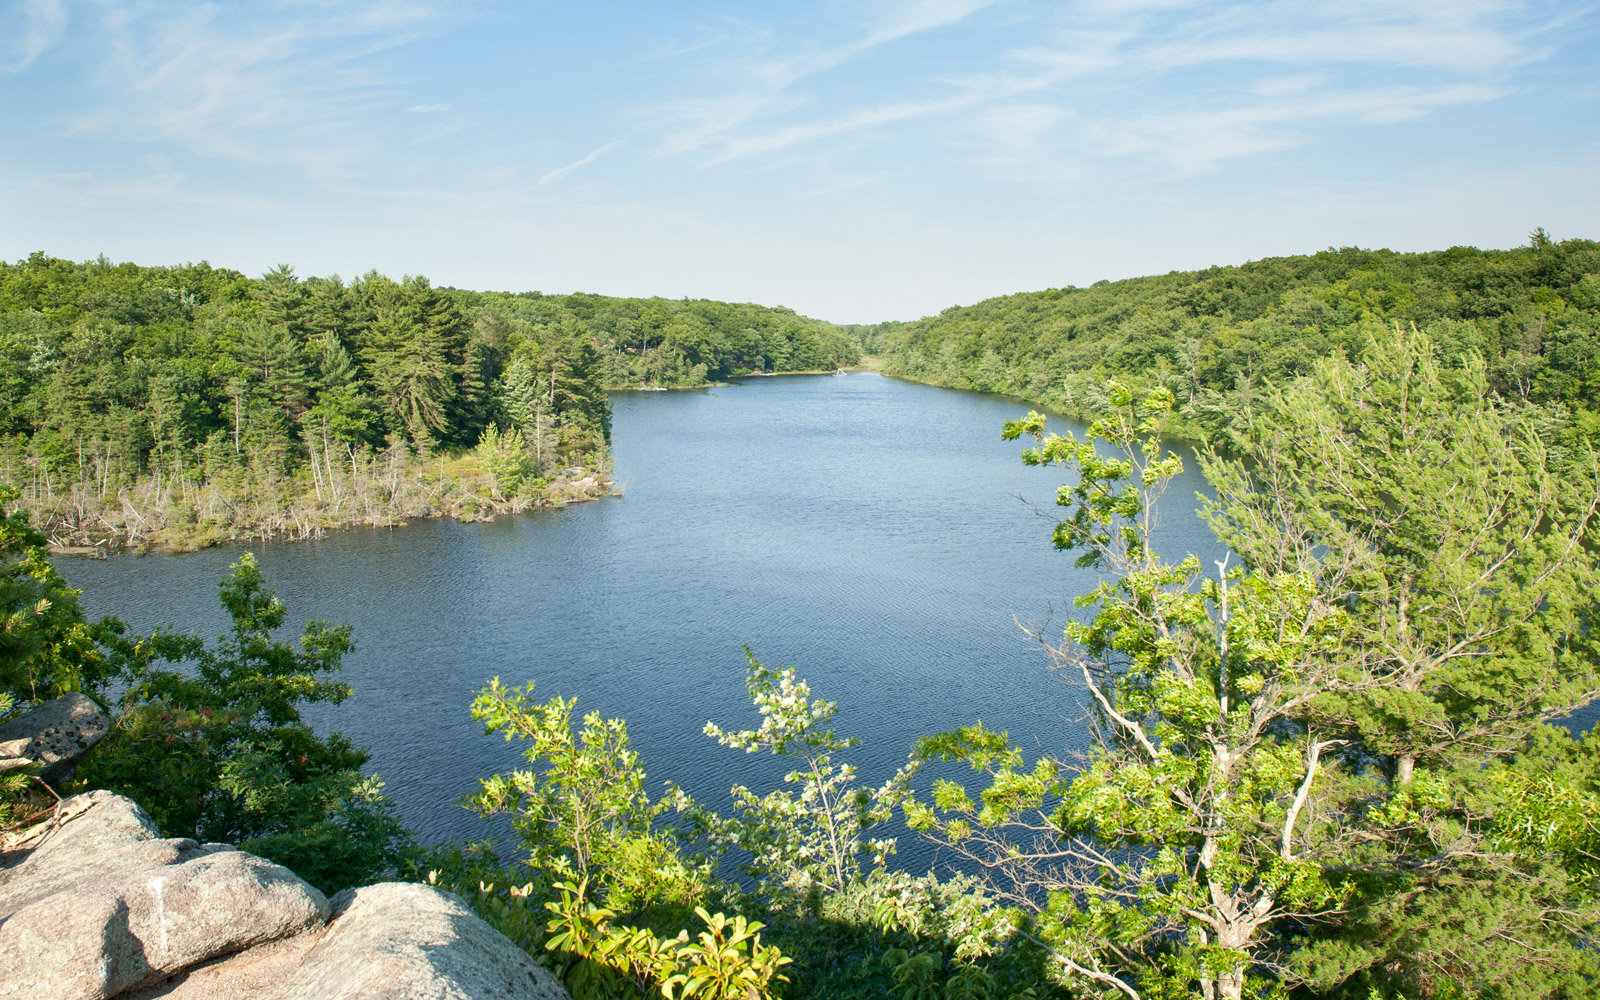 View from the bluff at Long Pond in Hopkinton, Rhode Island